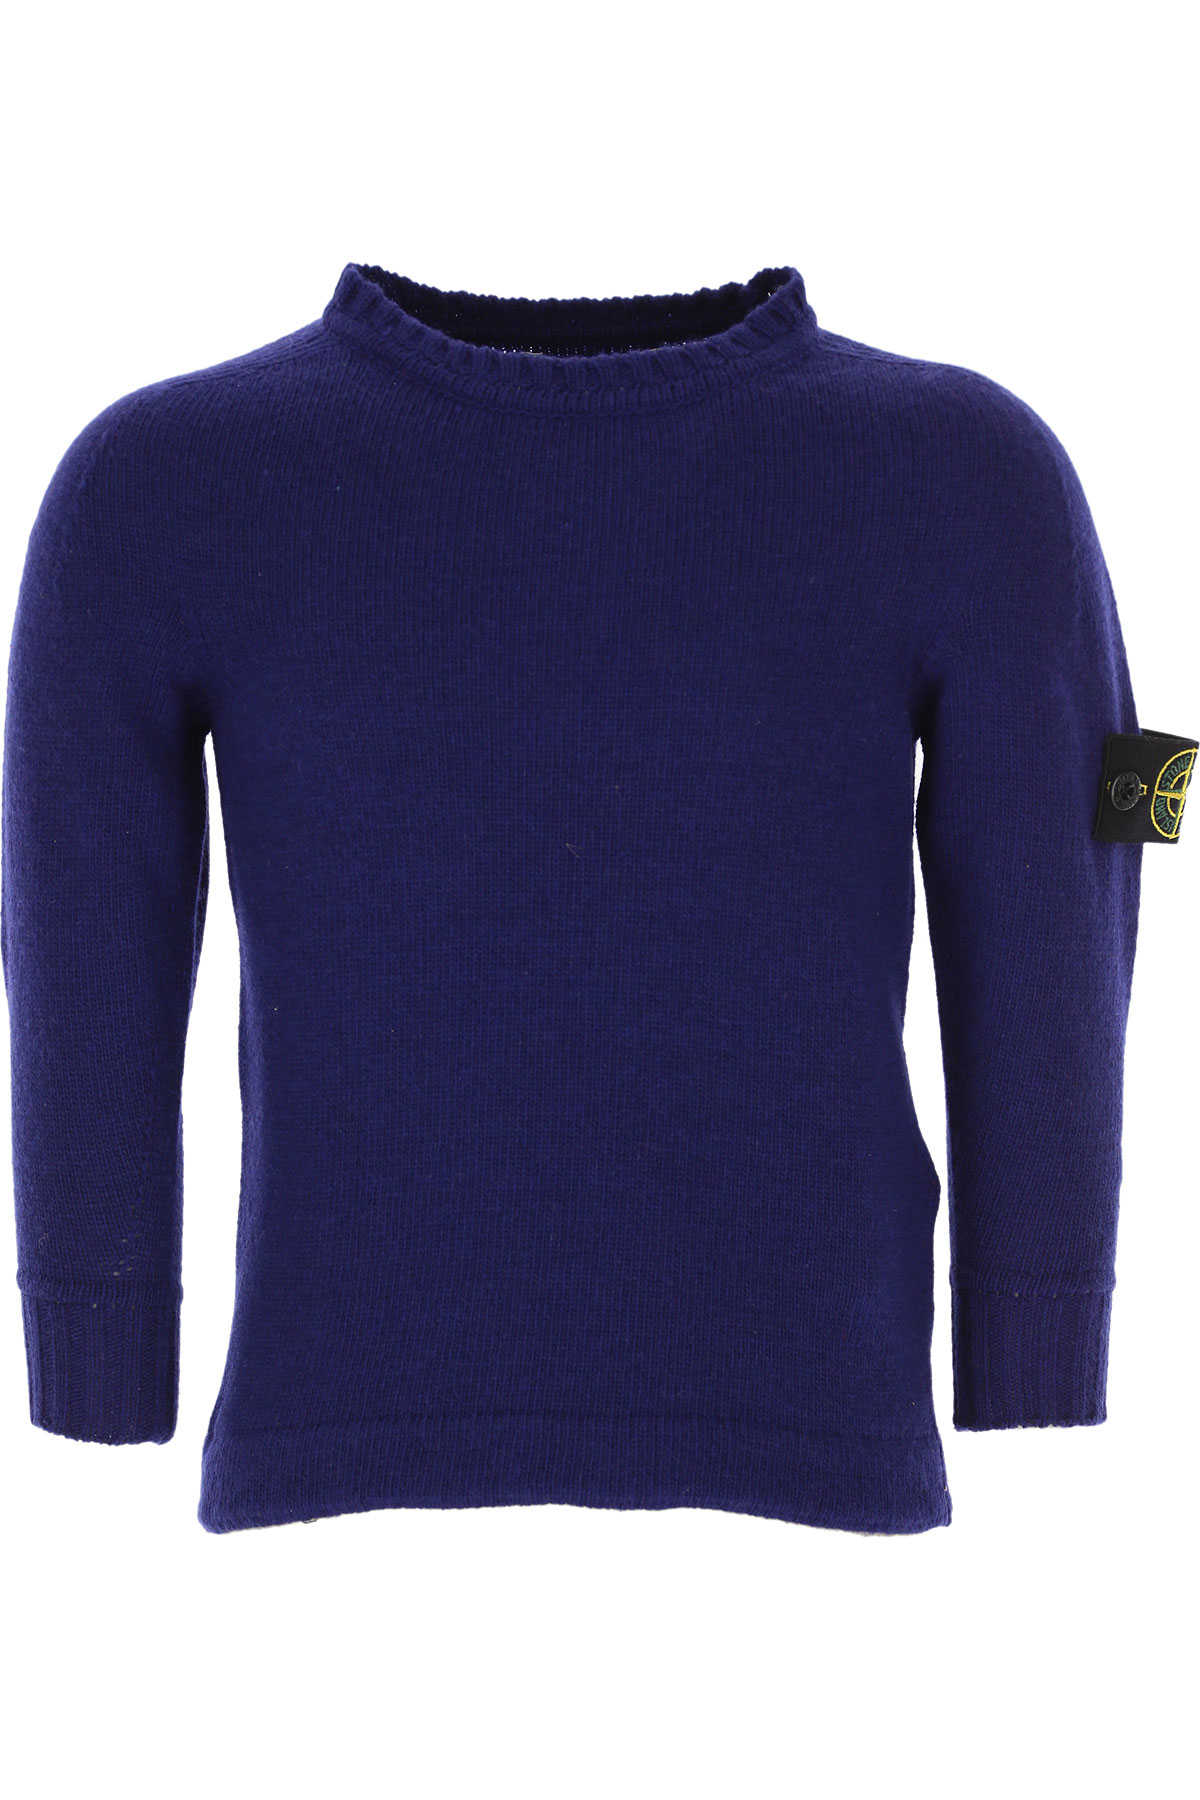 Stone Island Kids Sweaters for Boys On Sale in Outlet Blue SE - GOOFASH